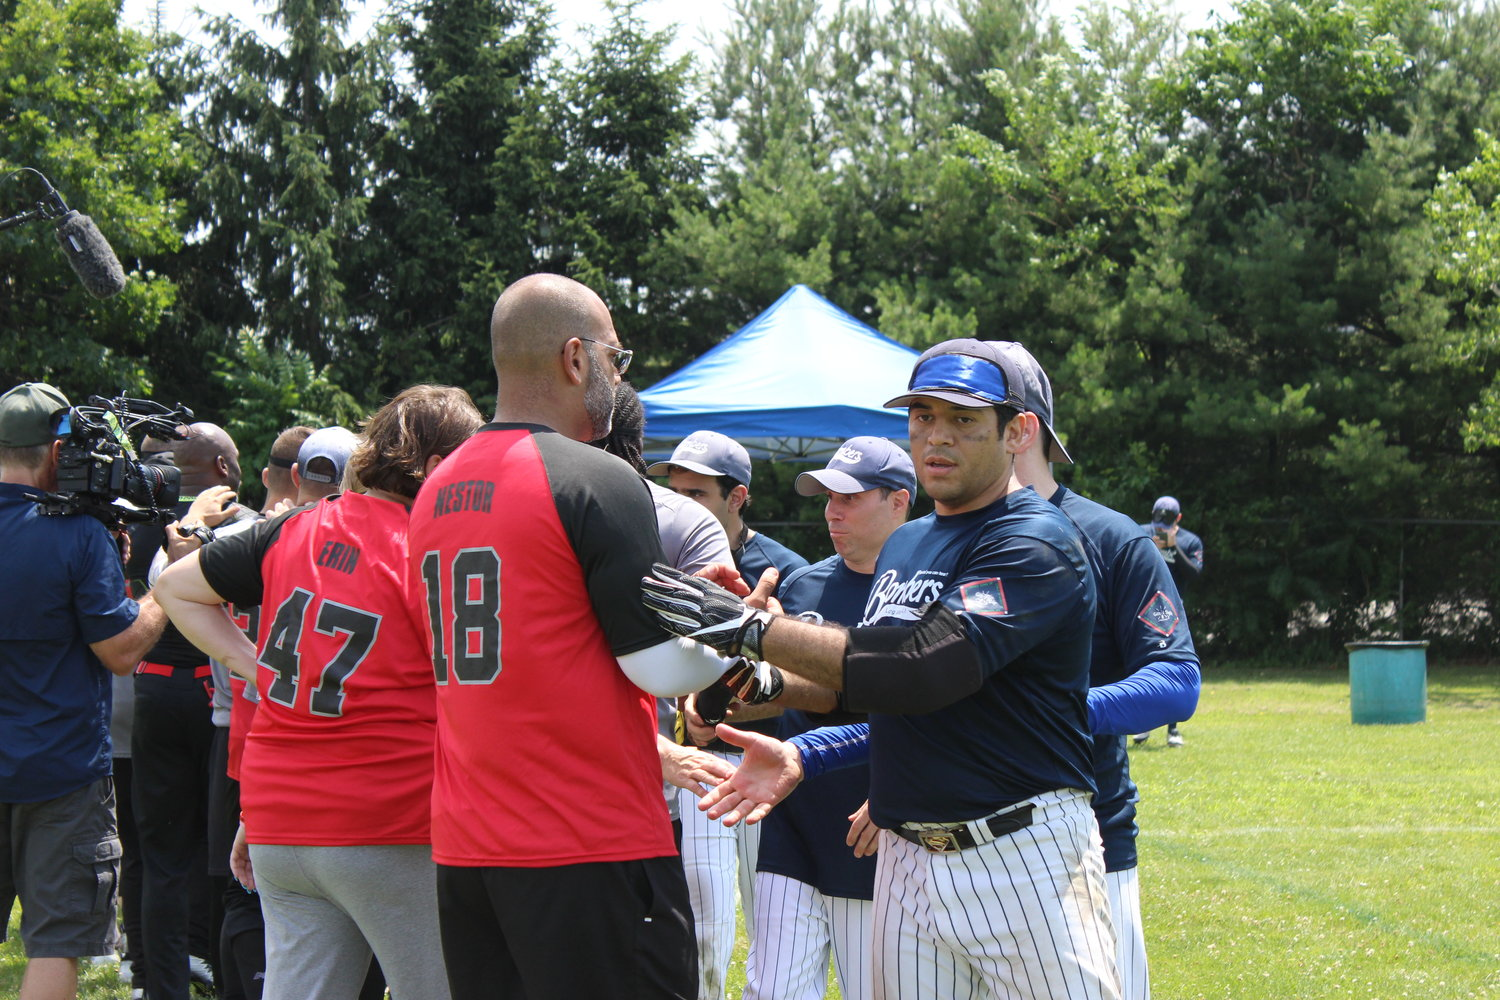 The Long Island Bombers, led by Captain Alex Barrera, of Bayshore, lined up to high-five the New Jersey Titans after their game.